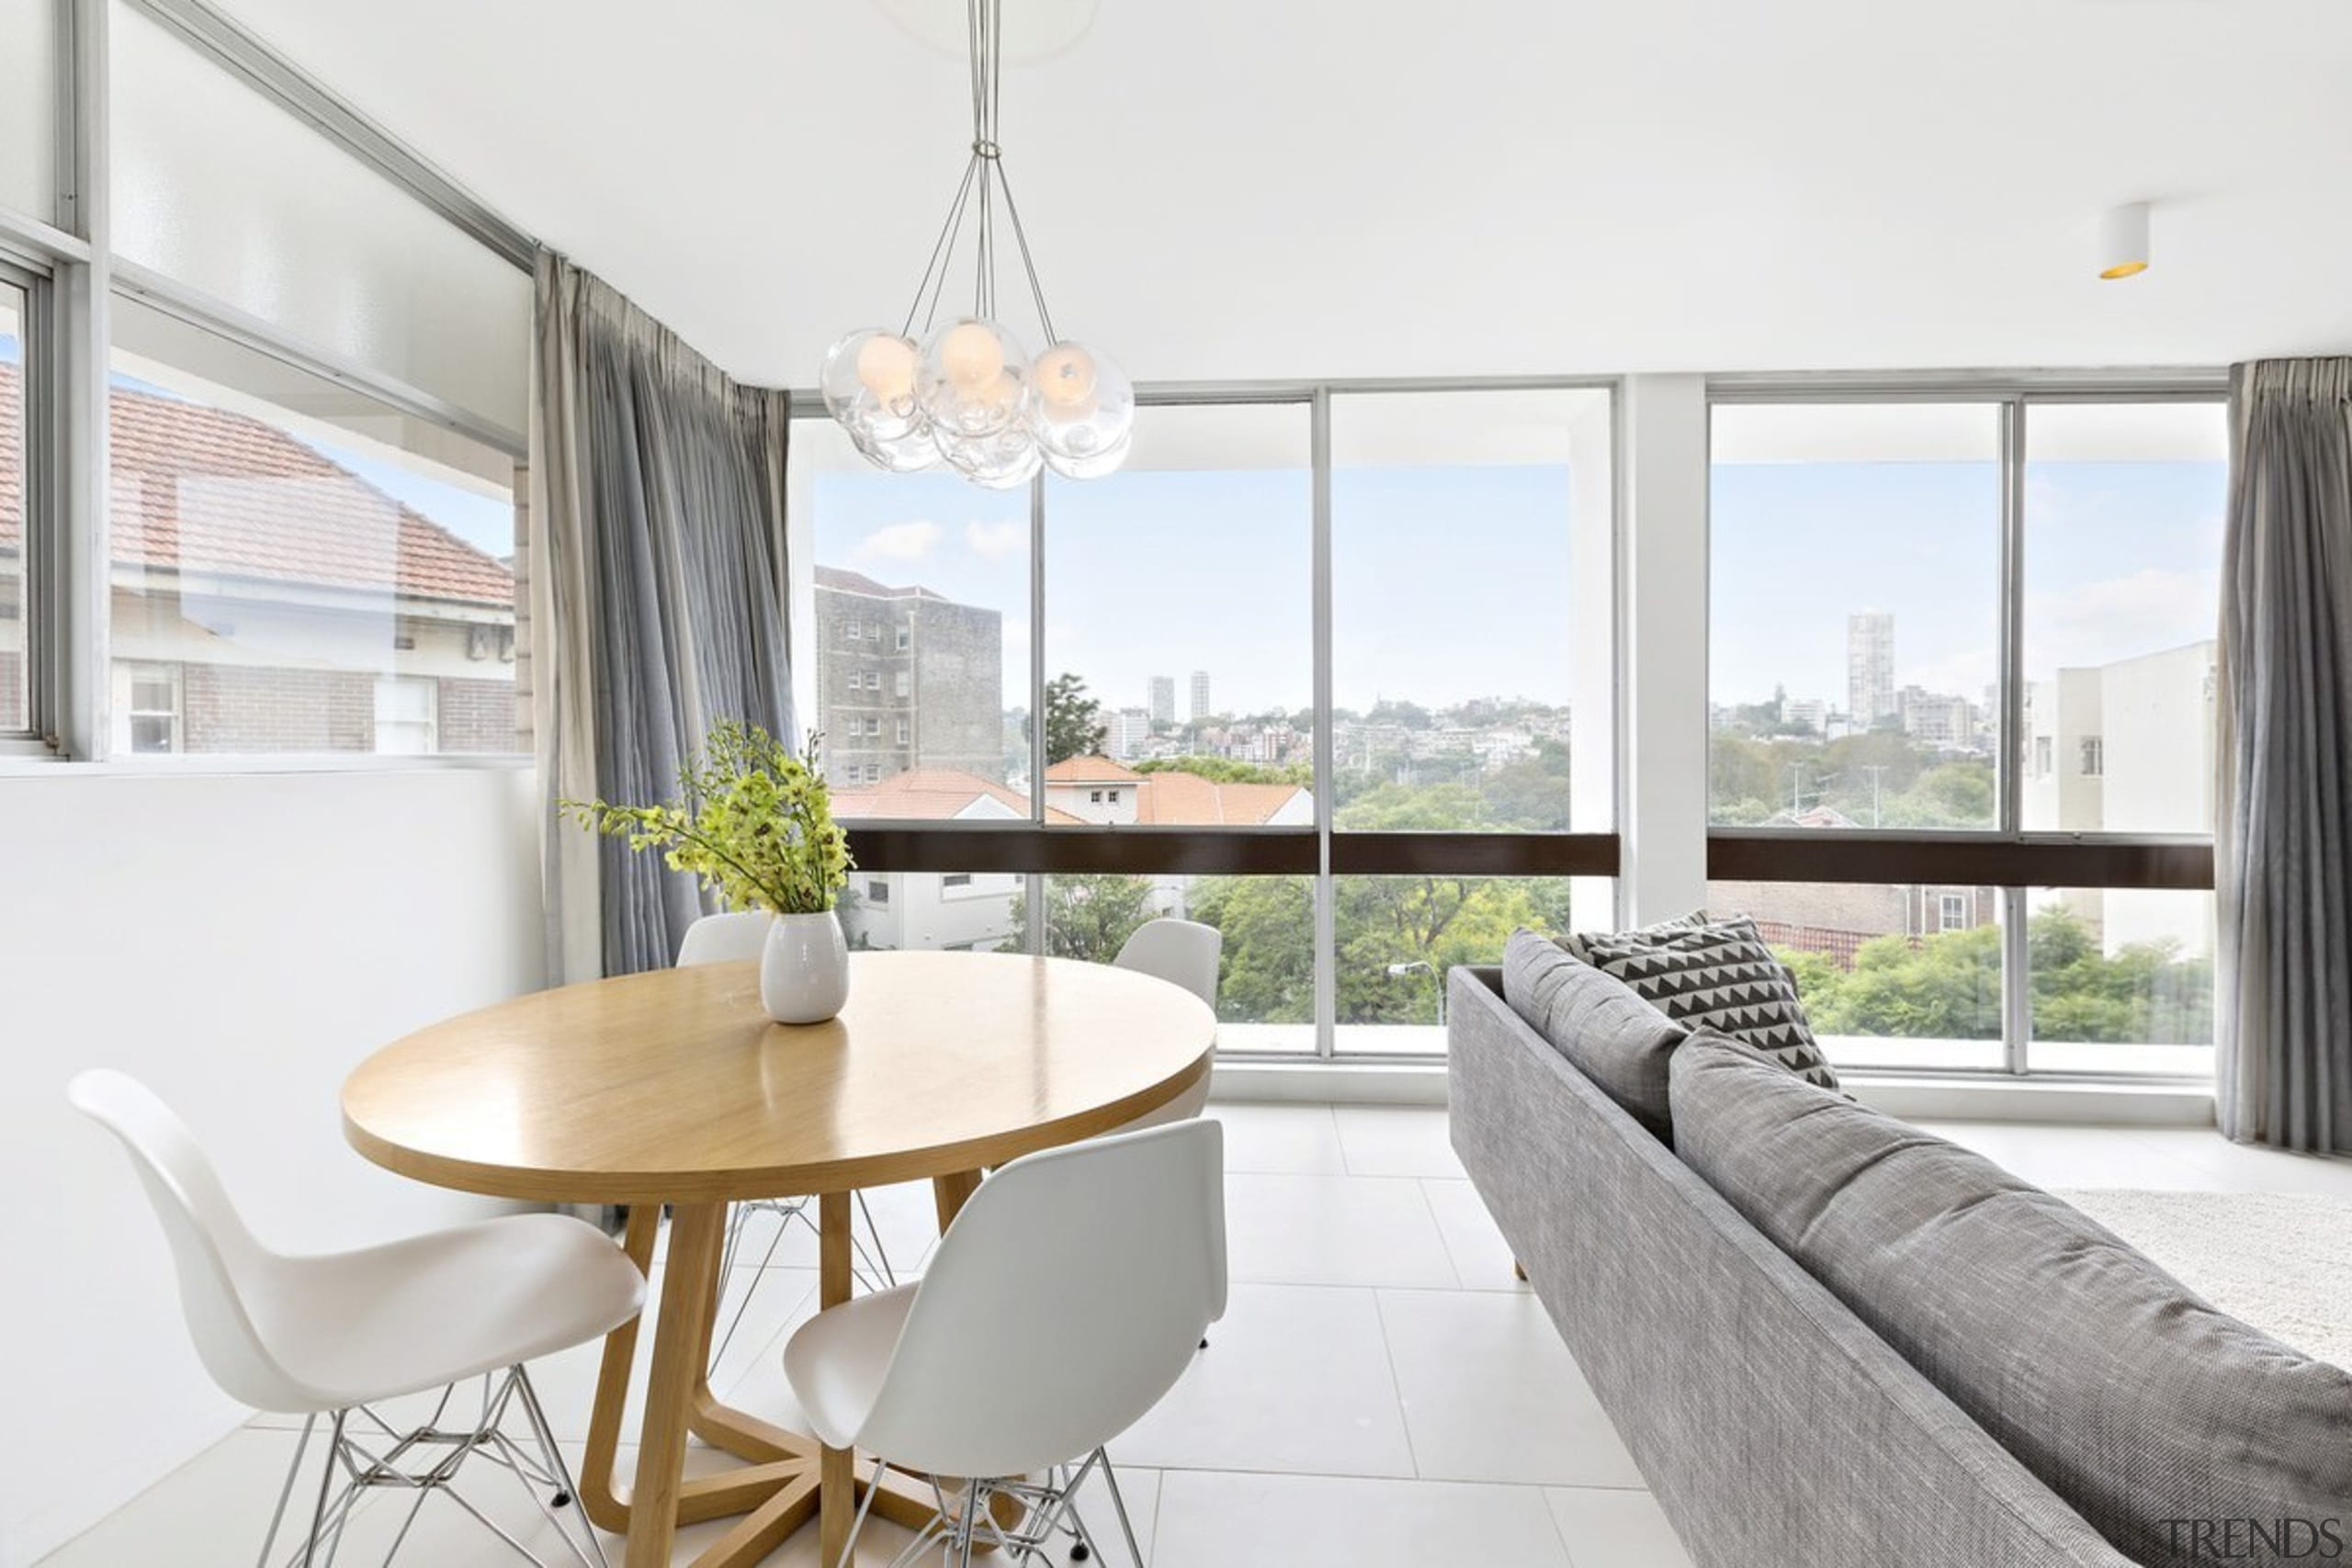 Views out to a sea of gree - apartment, architecture, dining room, home, house, interior design, living room, property, real estate, table, window, white